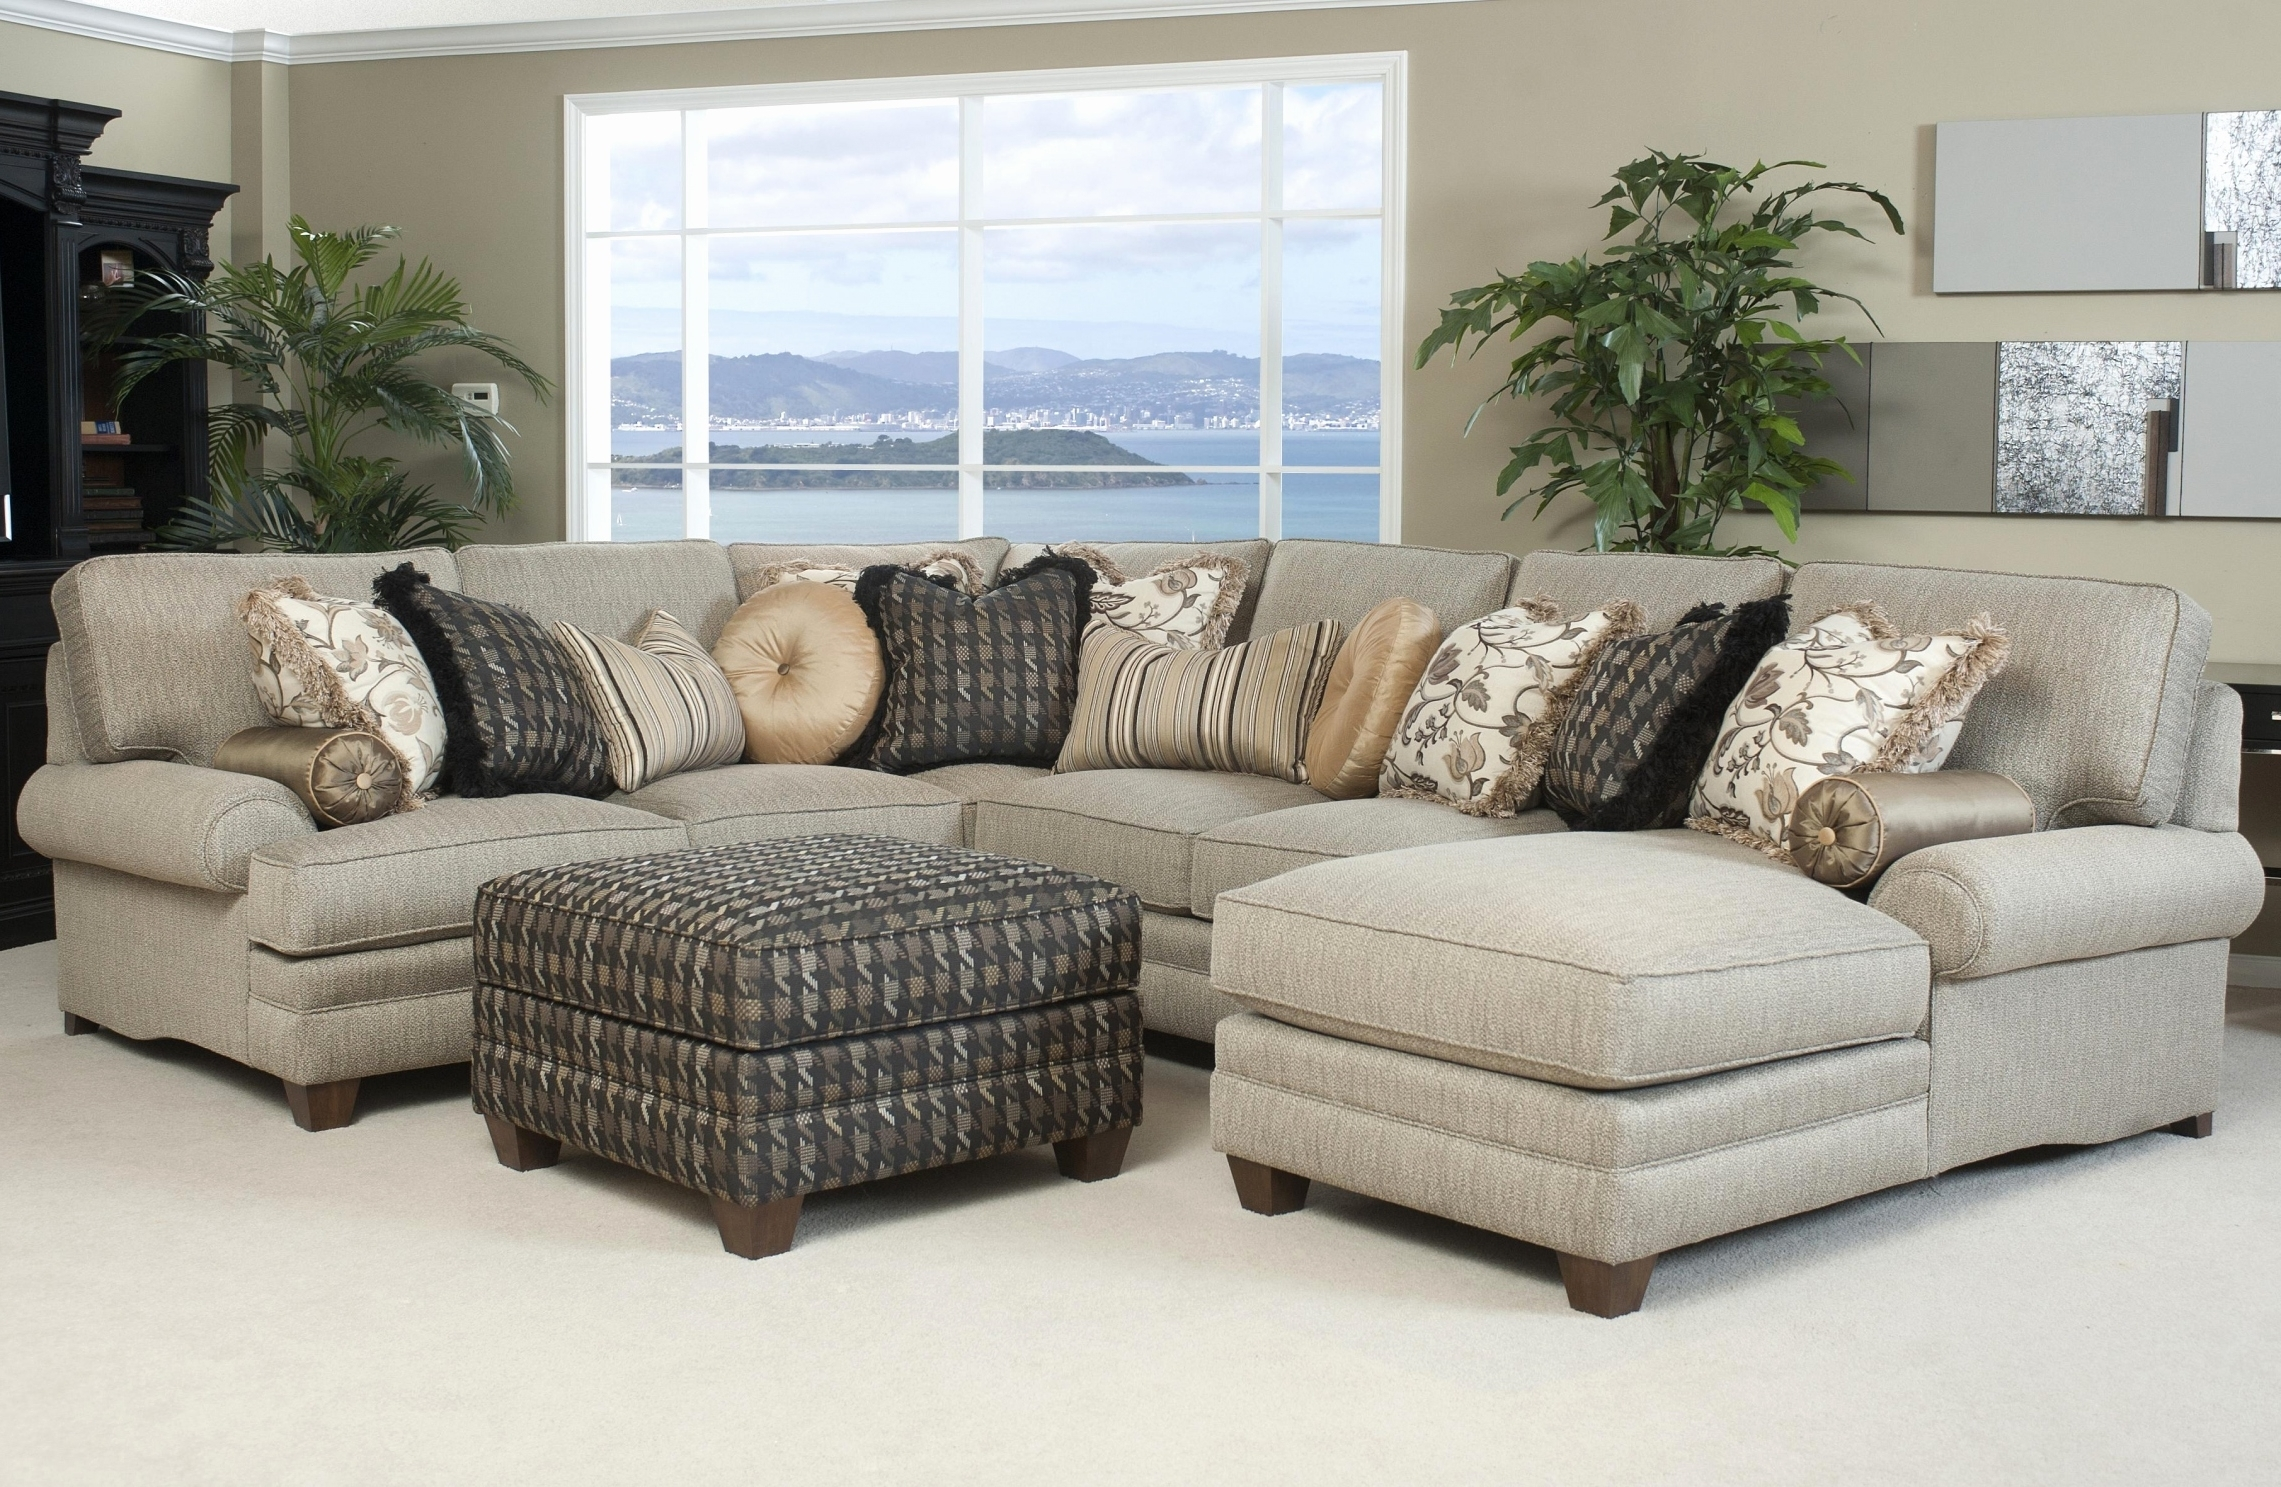 Recent 32 Amazing Sectional Sofa With Chaise Lounge Pictures – Sectional Throughout Halifax Sectional Sofas (View 5 of 15)